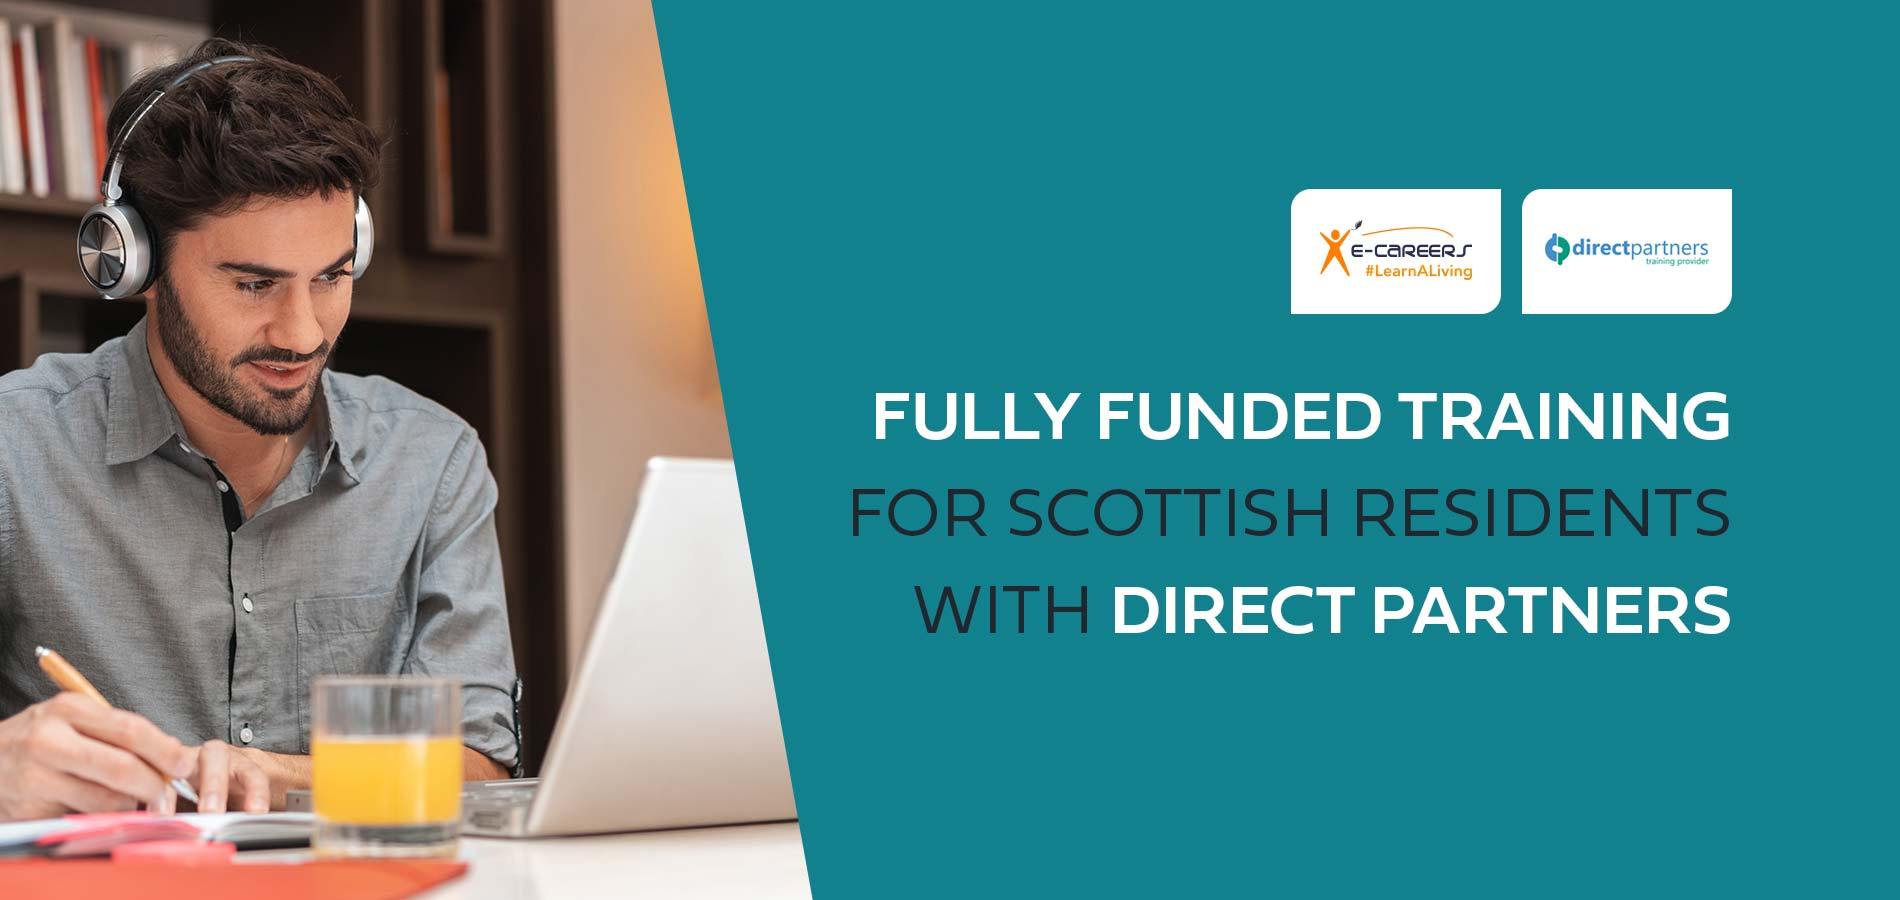 Proud to partner with Direct Partners to provide fully funded training in Scotland